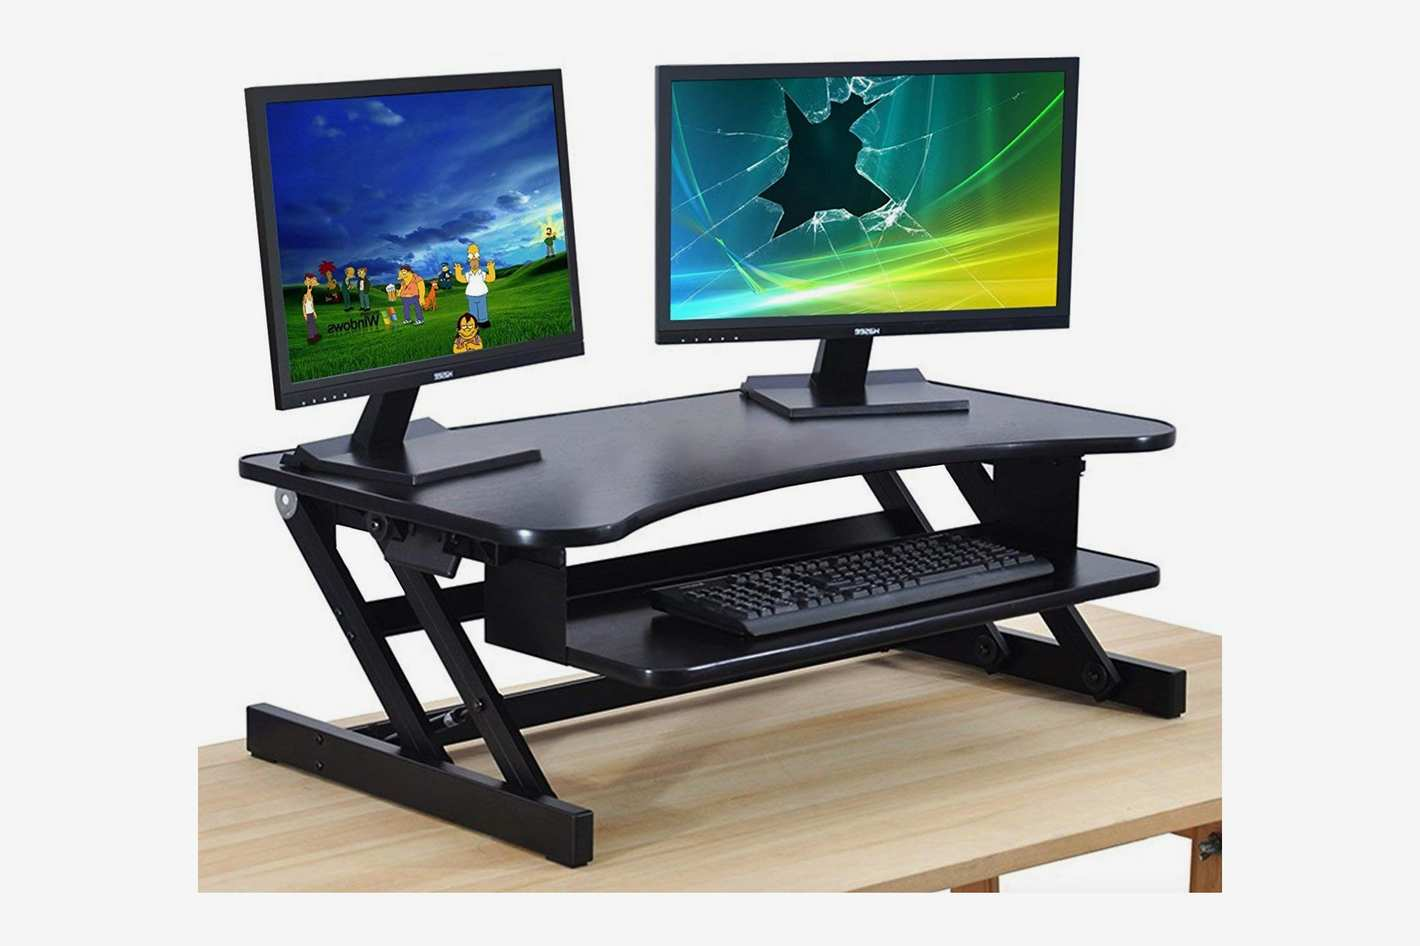 The House of Trade Height Adjustable Sit to Stand Up Desk Riser